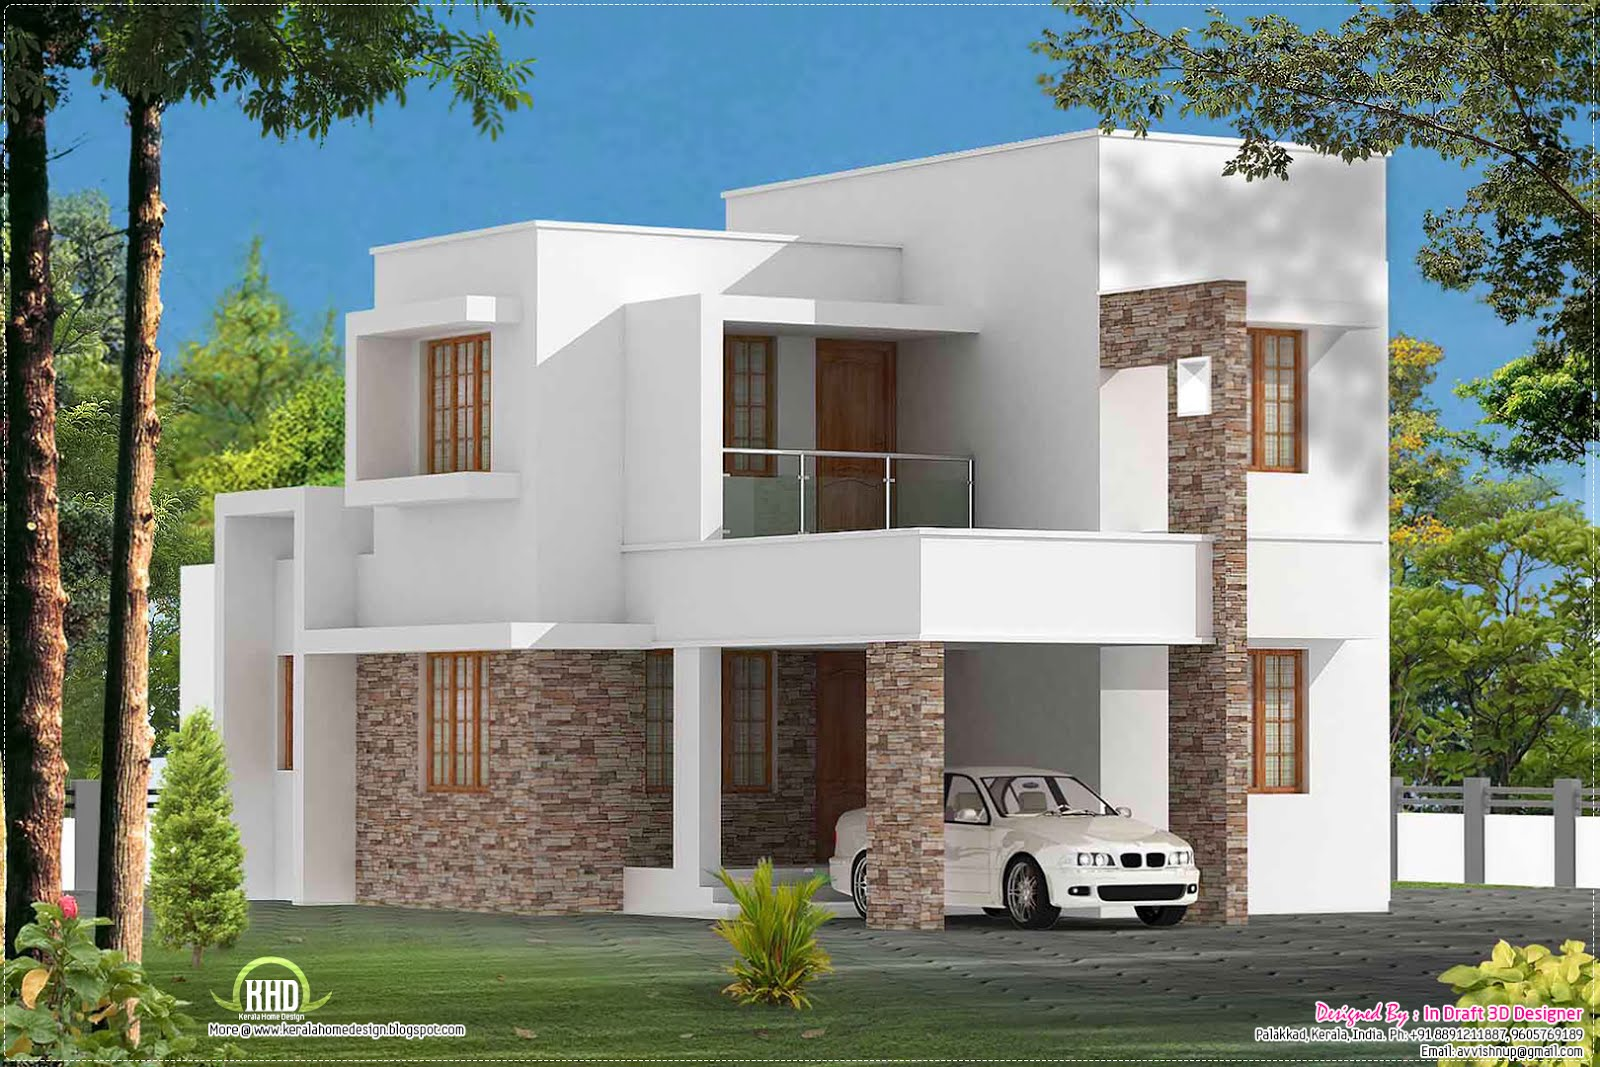 Simple 3 bed room contemporary villa kerala home design and floor plans Simple modern house designs and floor plans